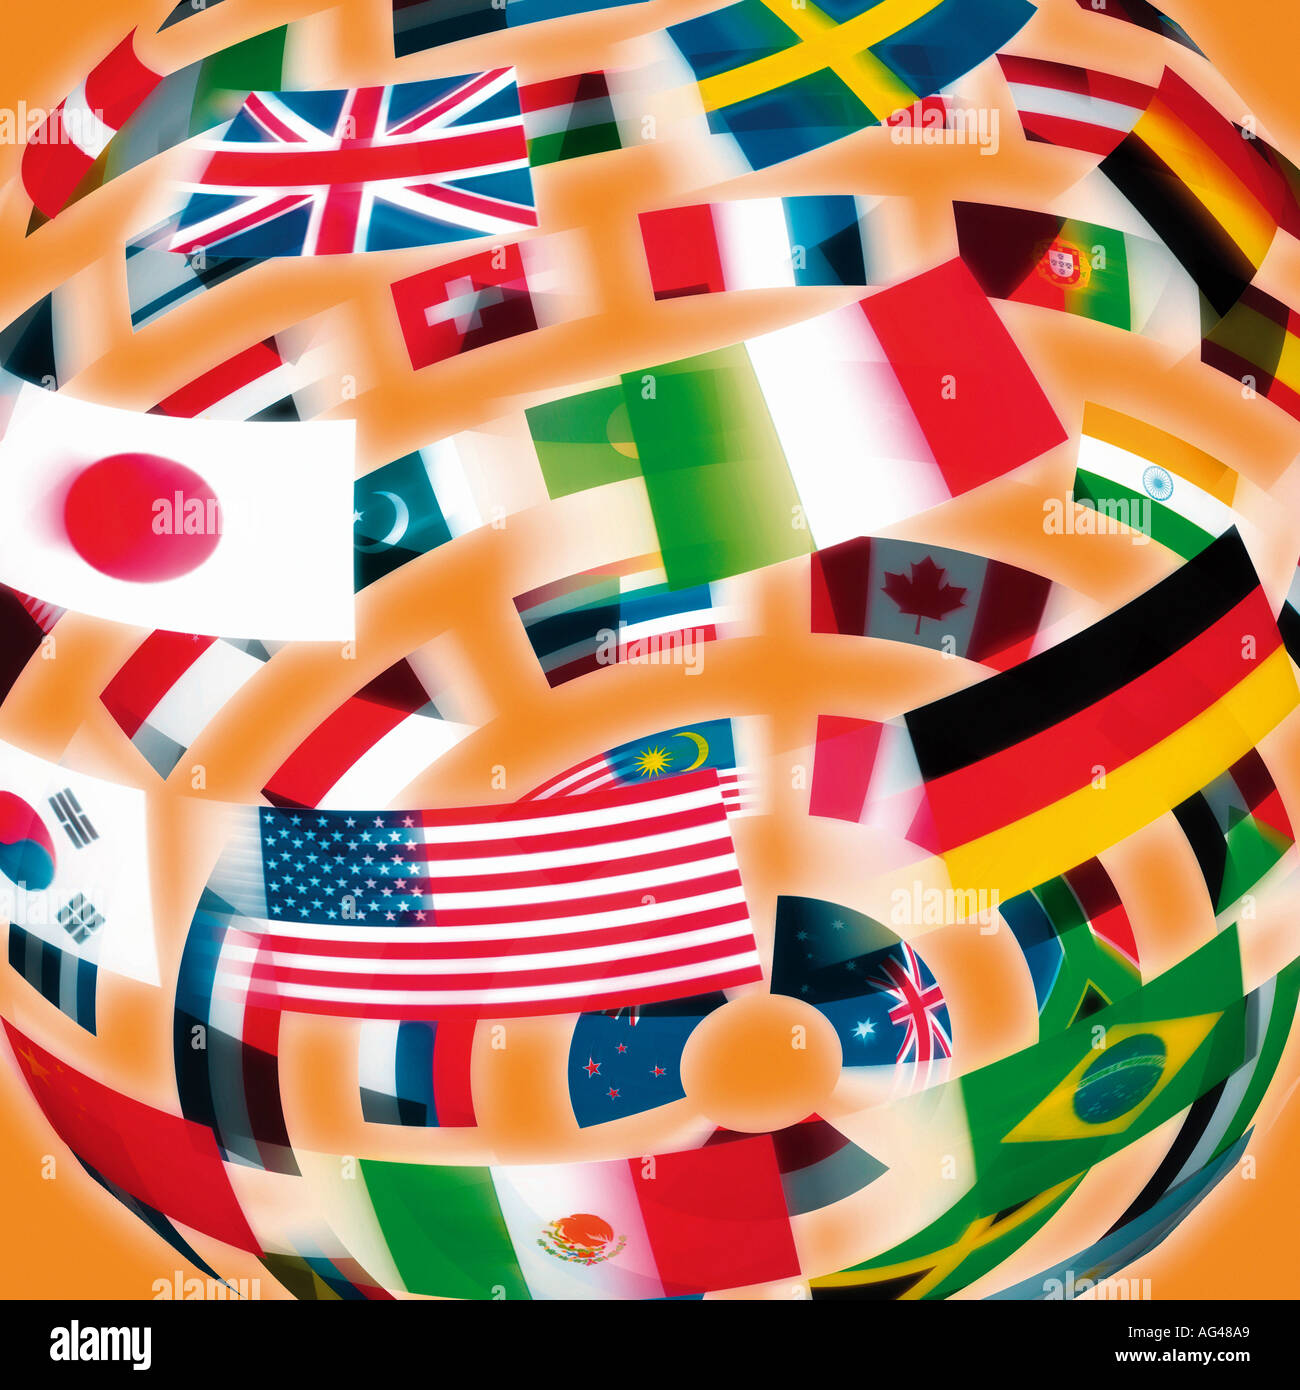 International Flags in the shape of a globe against an orange background. Flag World. - Stock Image